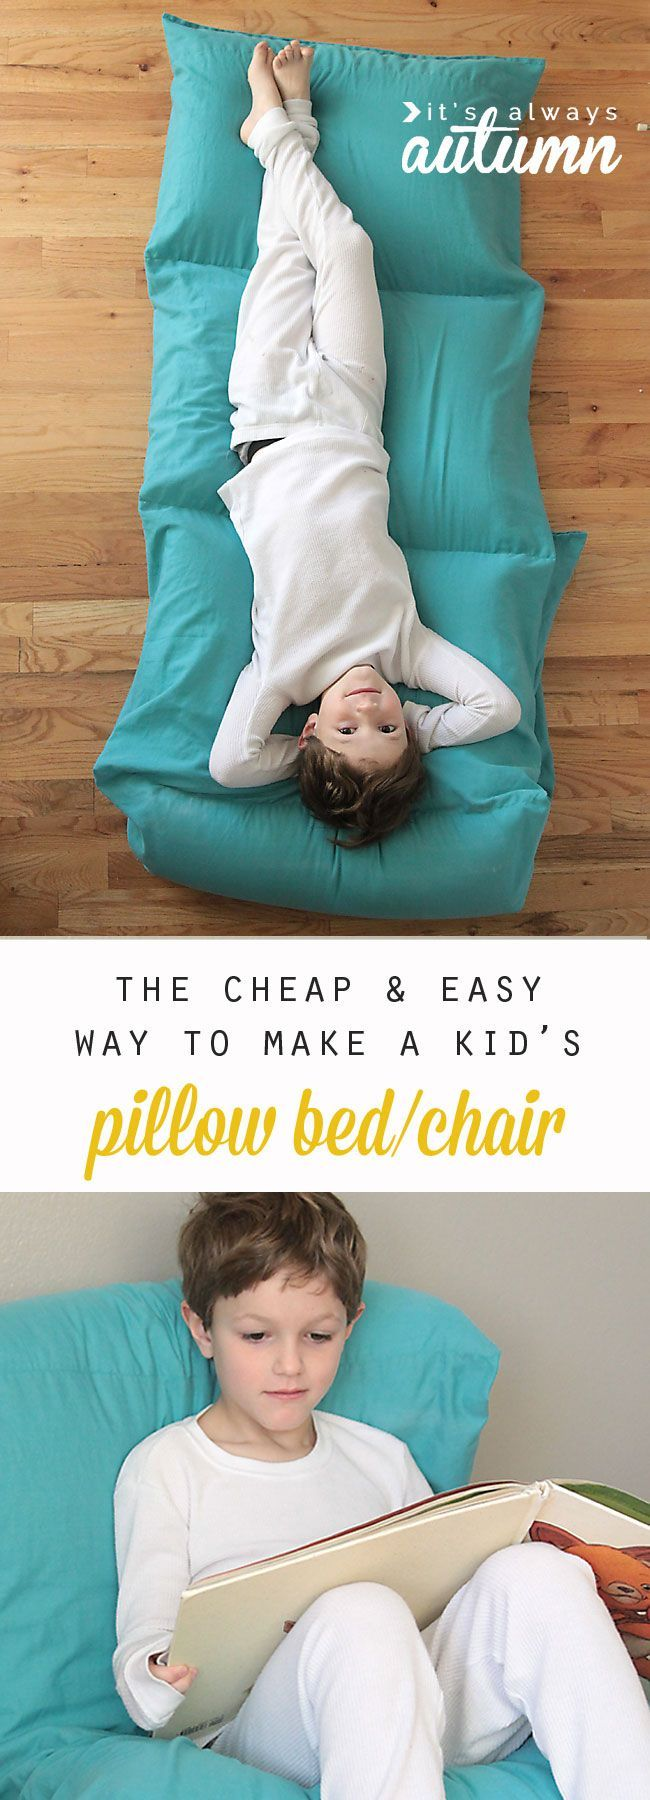 so cute! the cheapest and easiest way to make a kids' pillow bed. free sewing pattern and tutorial for this DIY portable bed lounger.